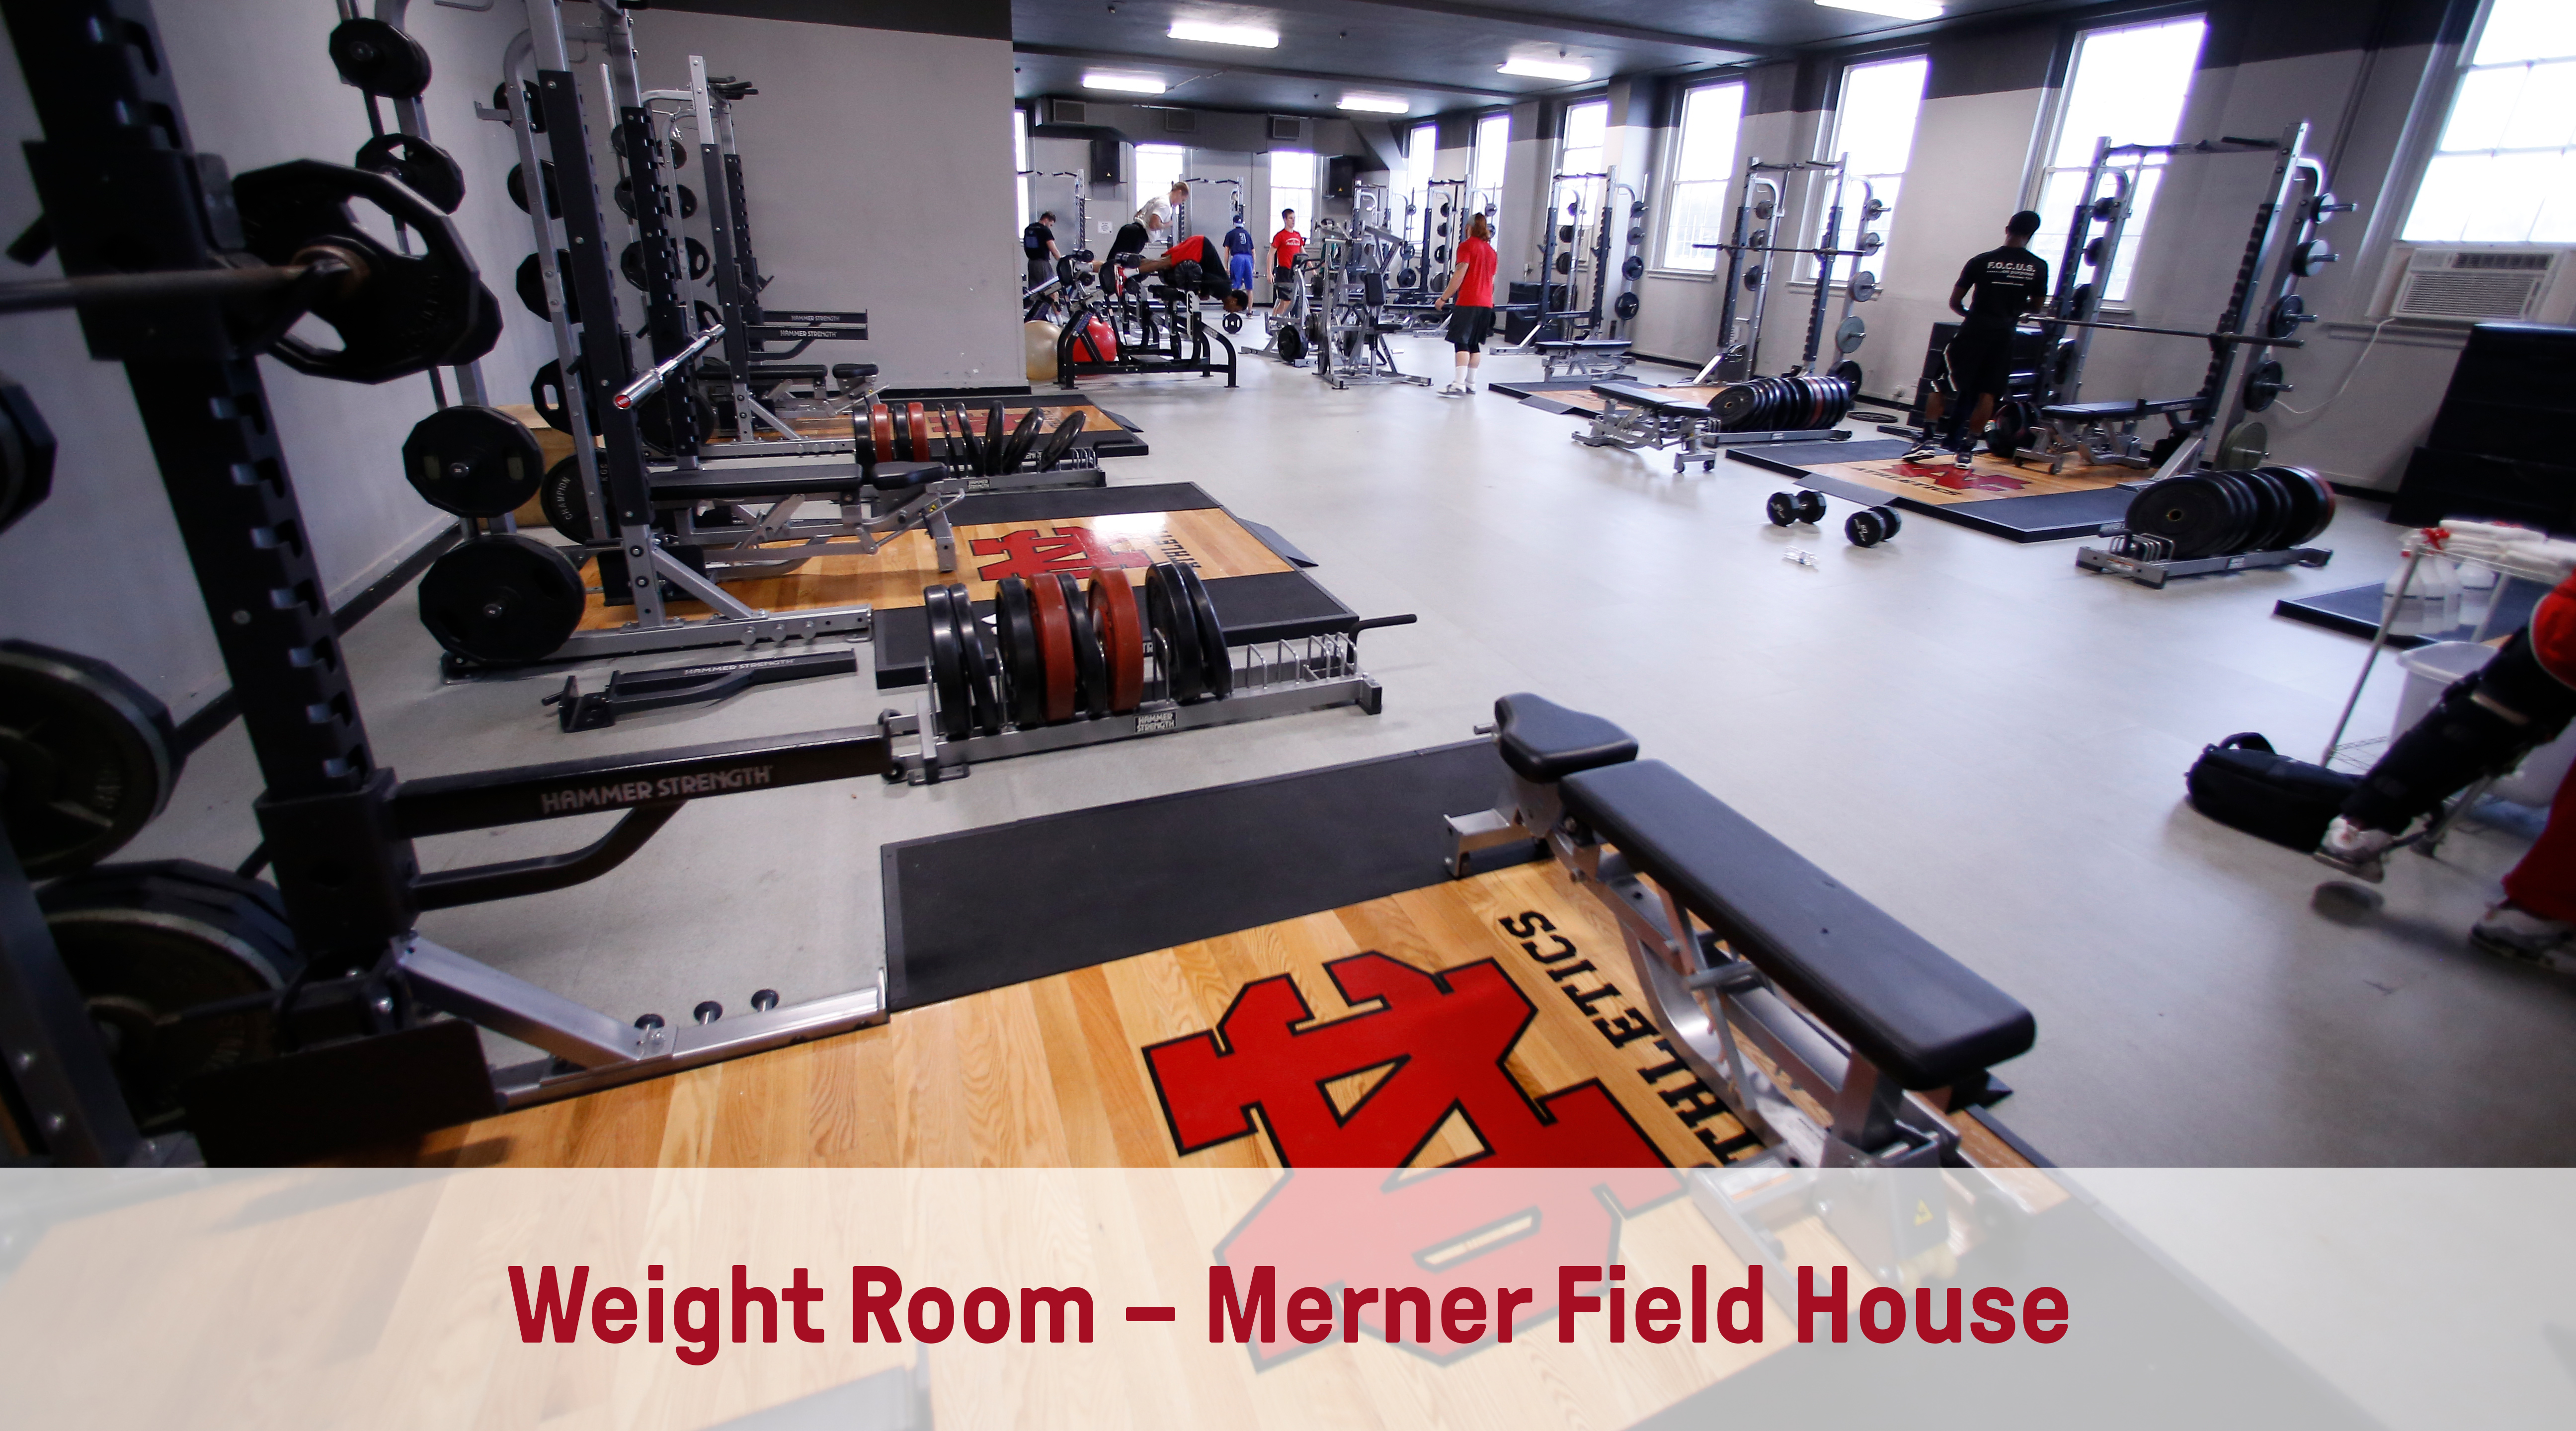 Weight Room – Merner Field House